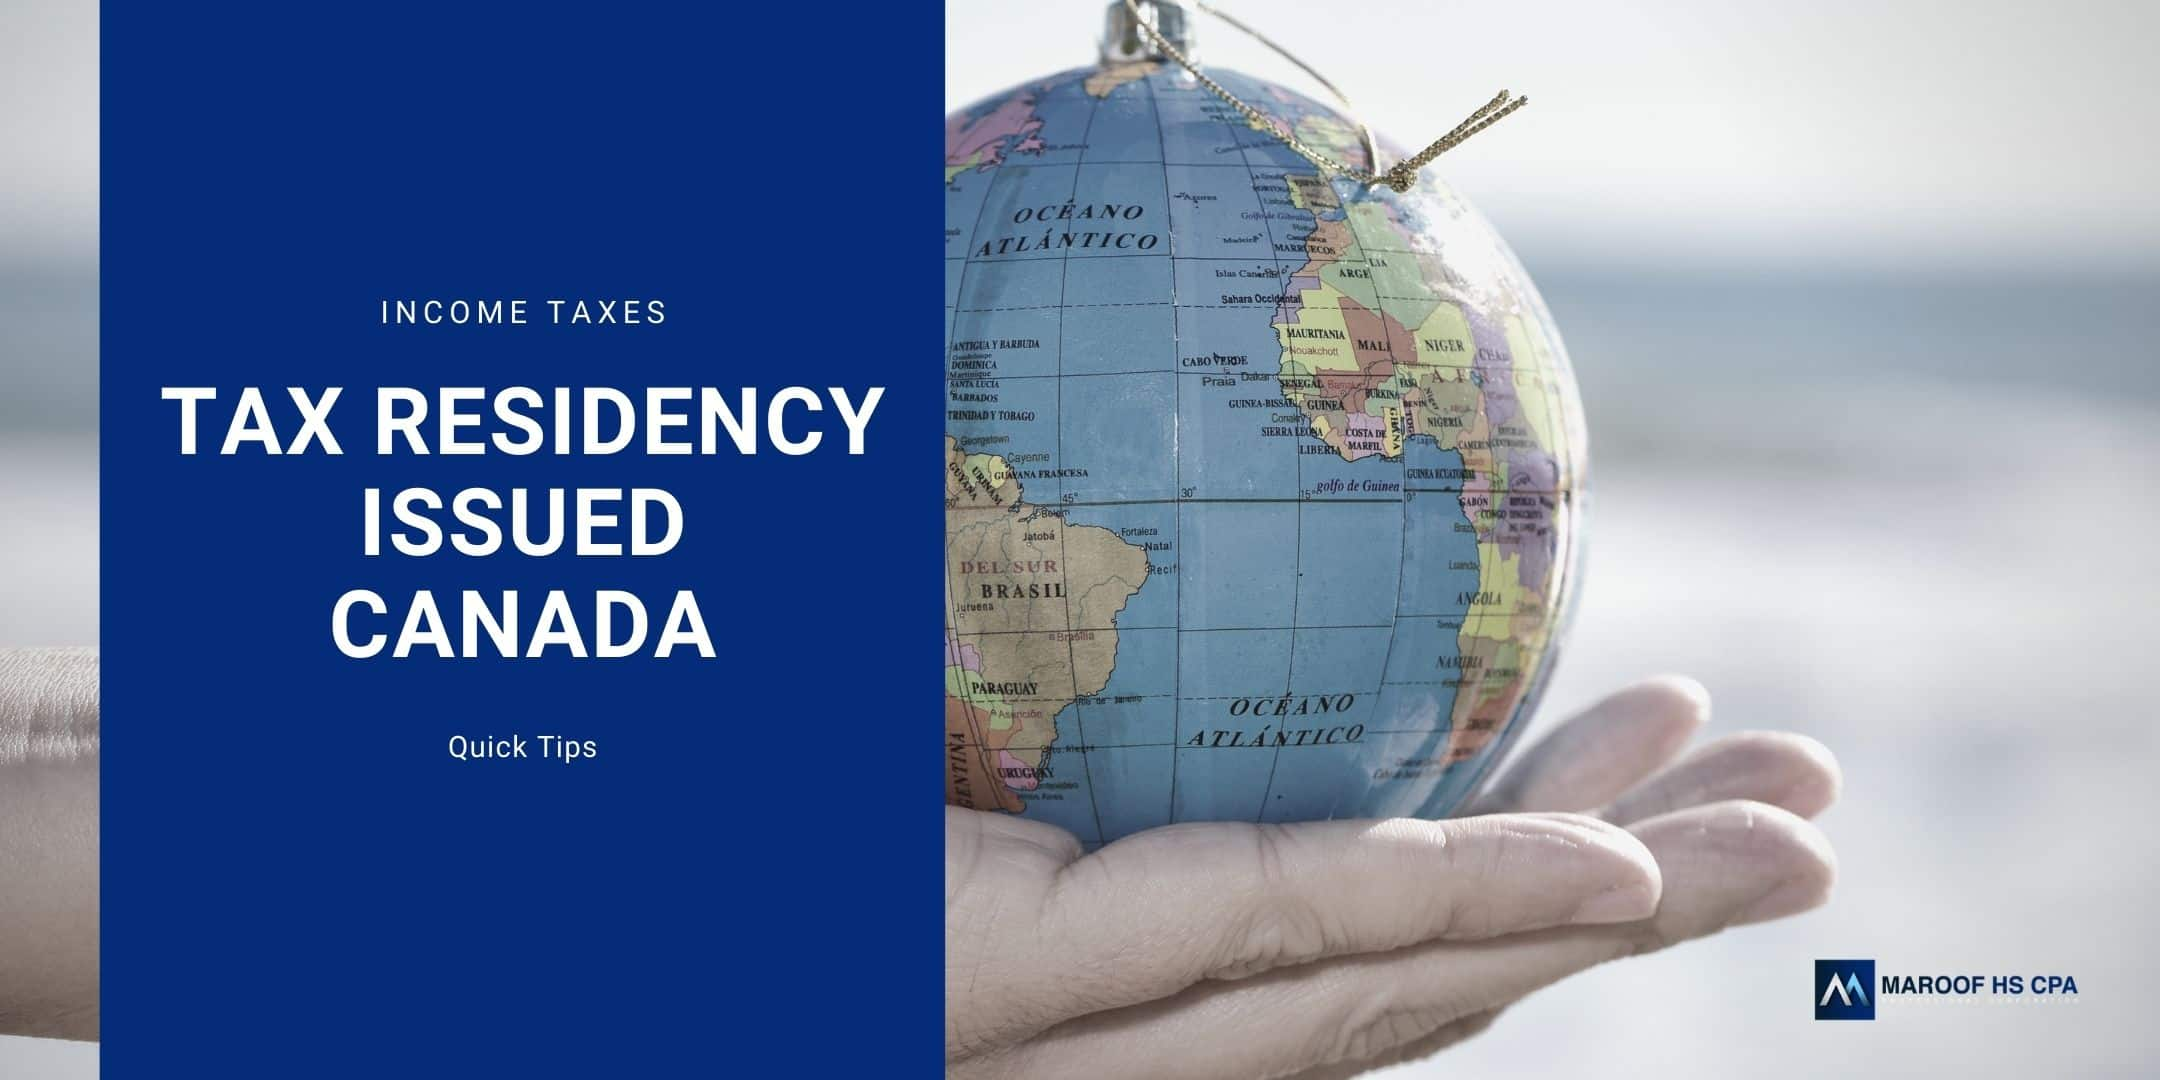 Income tax residency issues for Canada